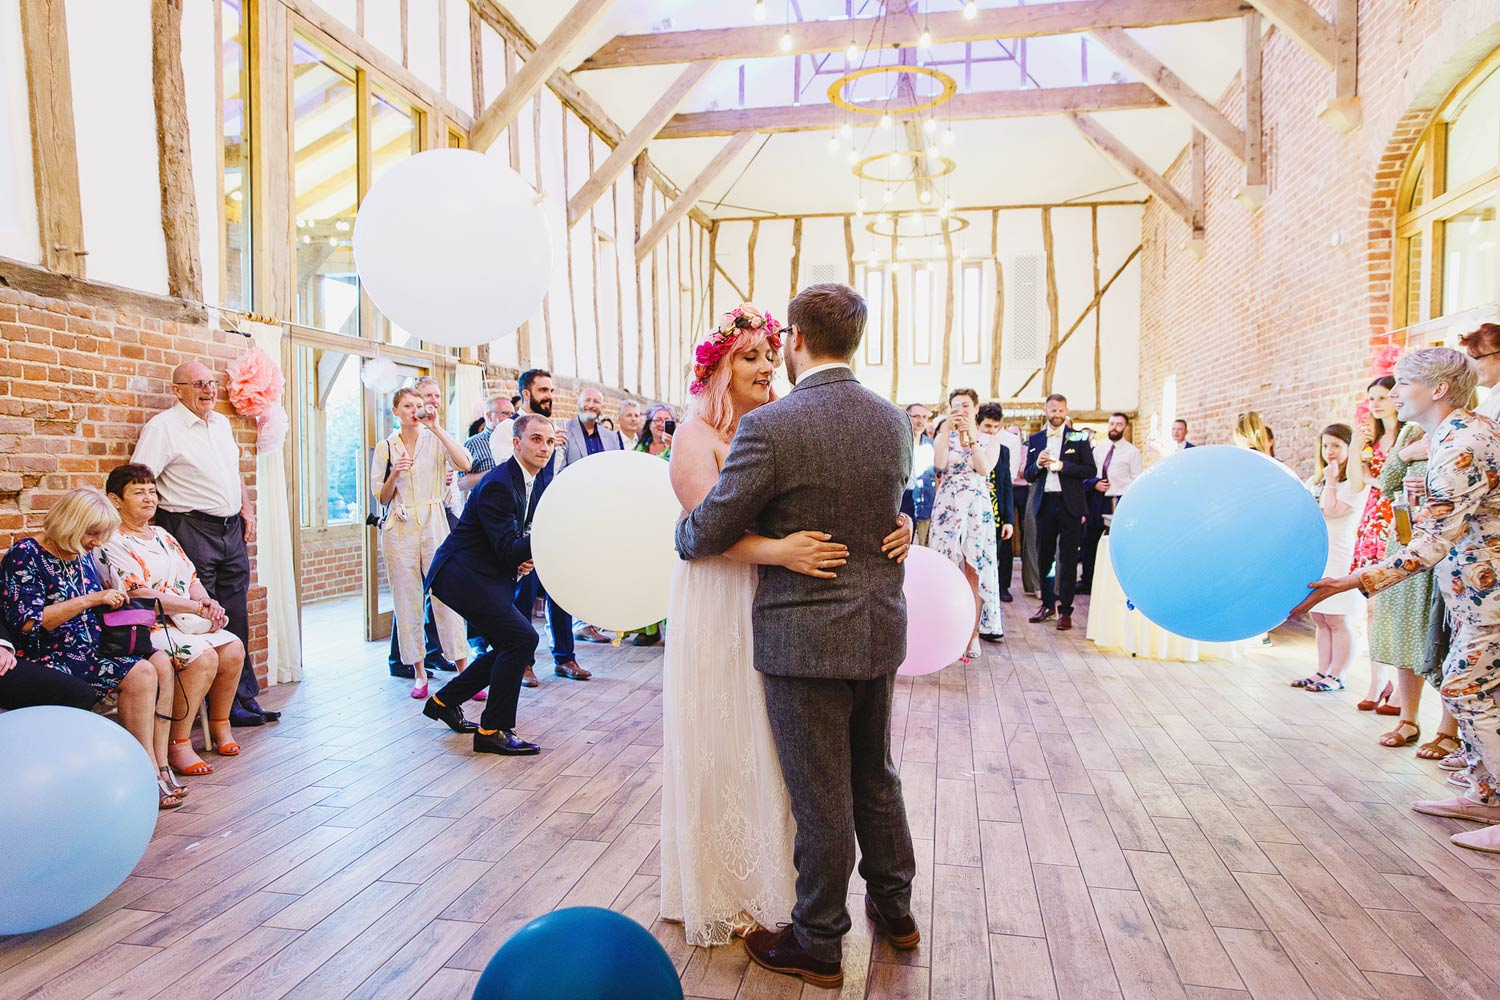 A bride and groom have their first dance at Bressingham Hall